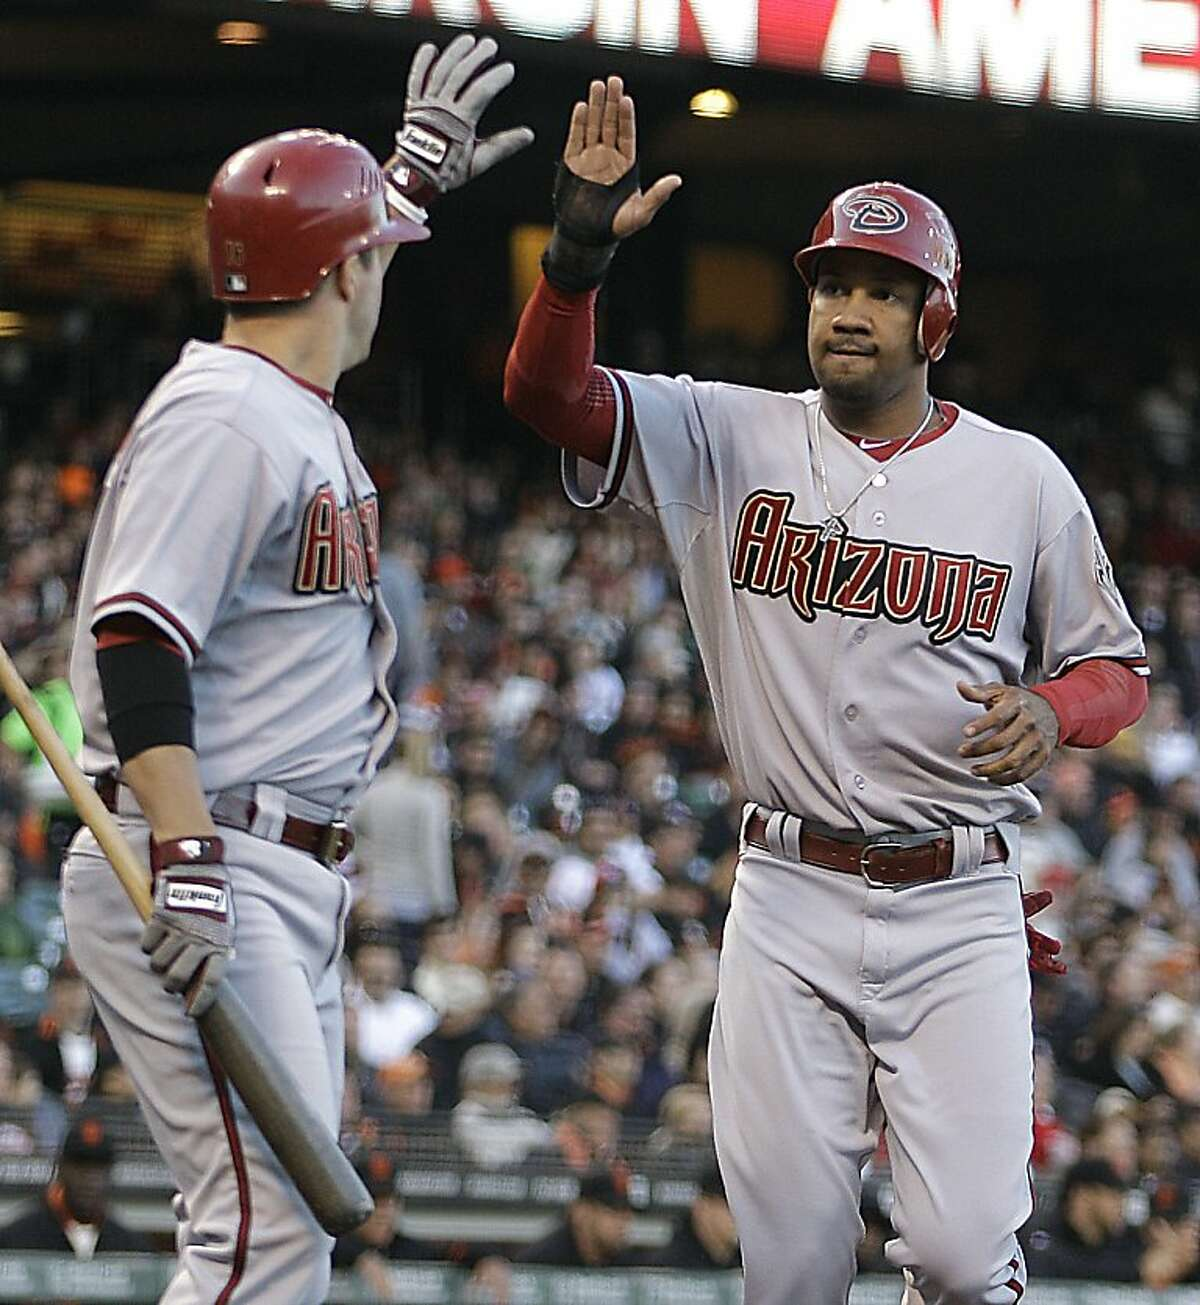 Arizona Diamondbacks' Chris Young, right, is congratulated by teammate John McDonald after scoring against the San Francisco Giants' in the second inning of a baseball game Tuesday, May 29, 2012, in San Francisco. Young scored on a single by Arizona's Josh Bell. (AP Photo/Ben Margot)